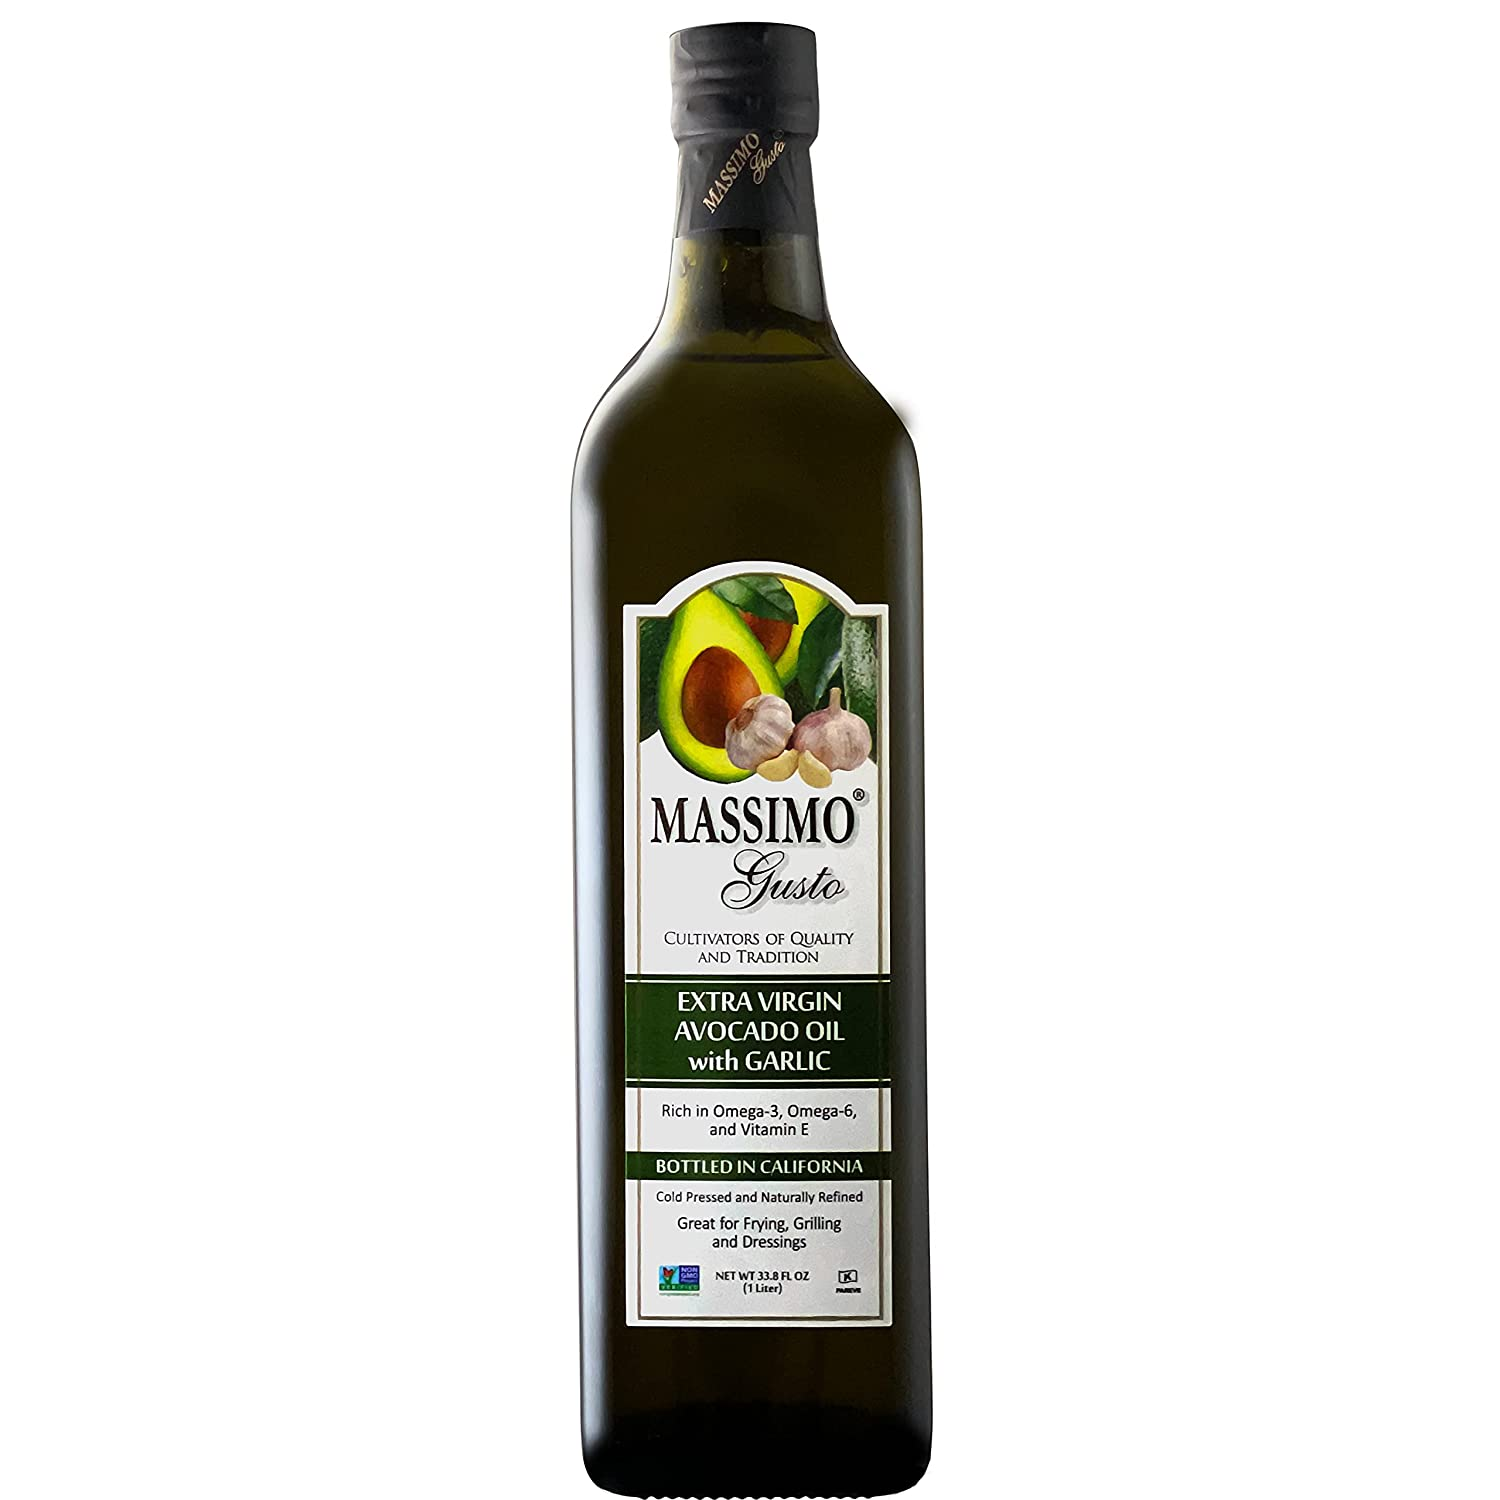 Massimo Gusto - Garlic Infused Avocado Max 50% OFF Oil Li Virgin 1 Limited time trial price Extra